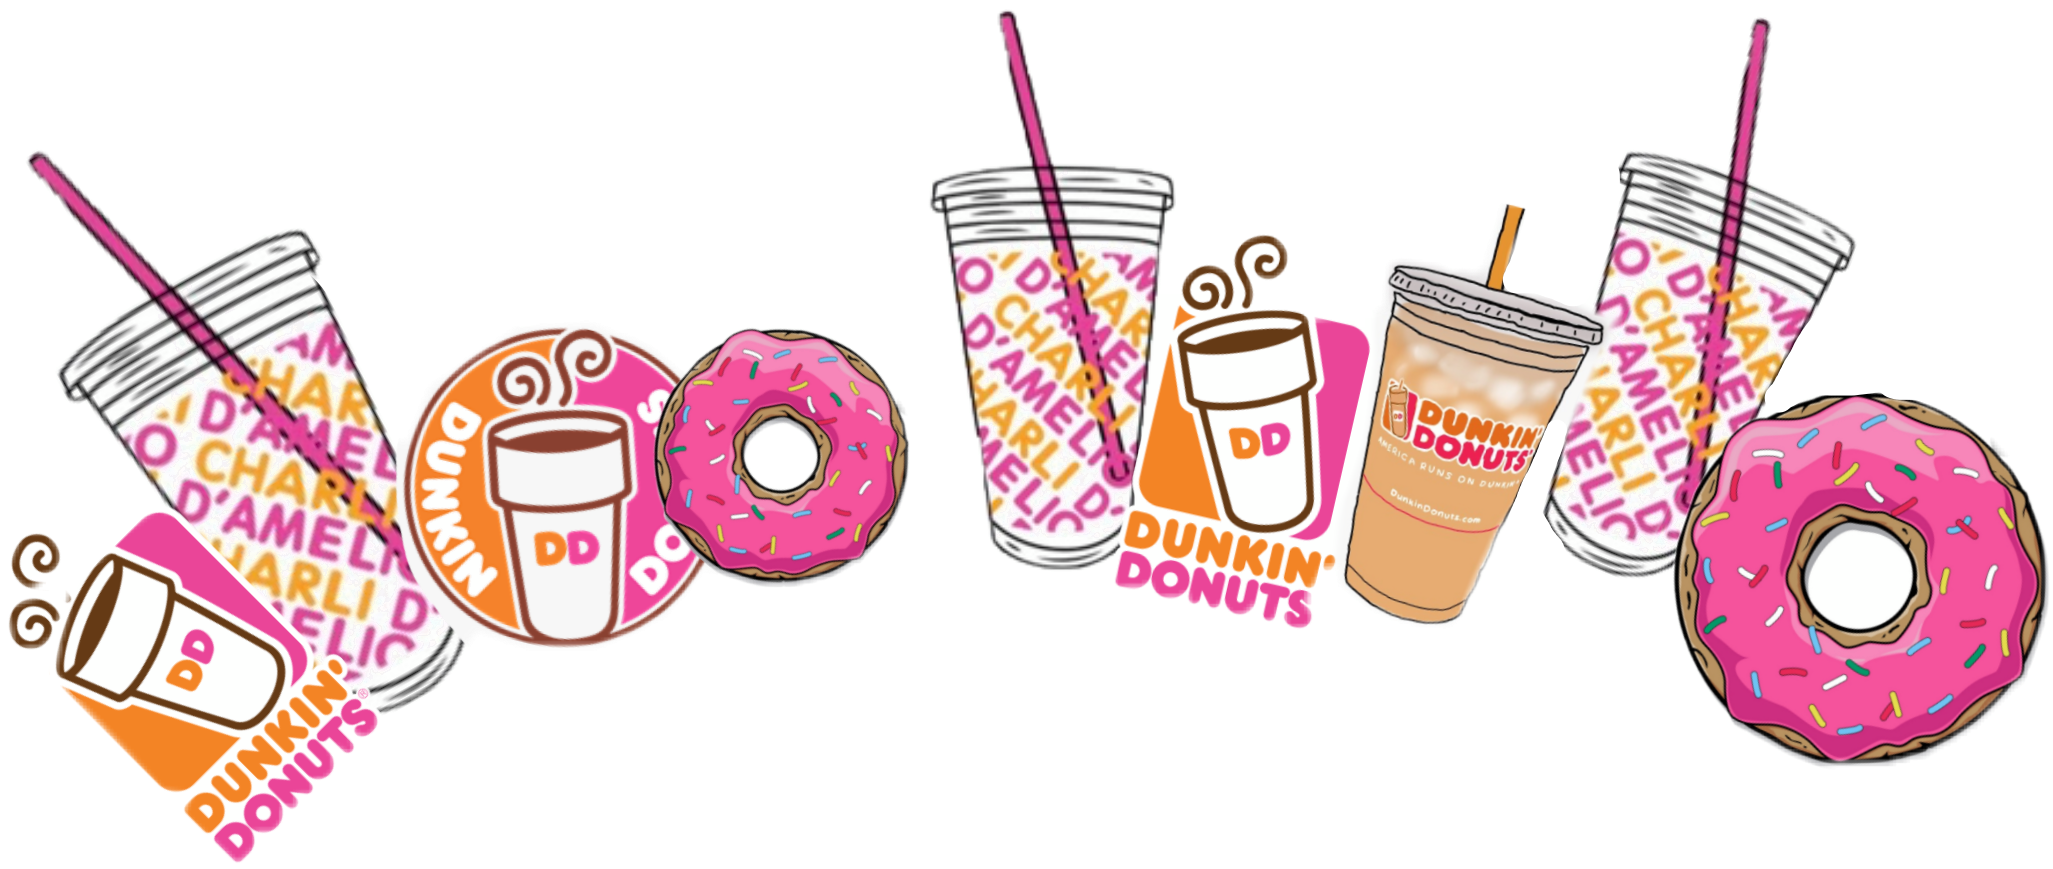 Dunkin Donuts Dunkindonuts Dd Dunkincrown Charli Damelio Freetoedit Preppy Stickers Cute Stickers Funny Wallpapers